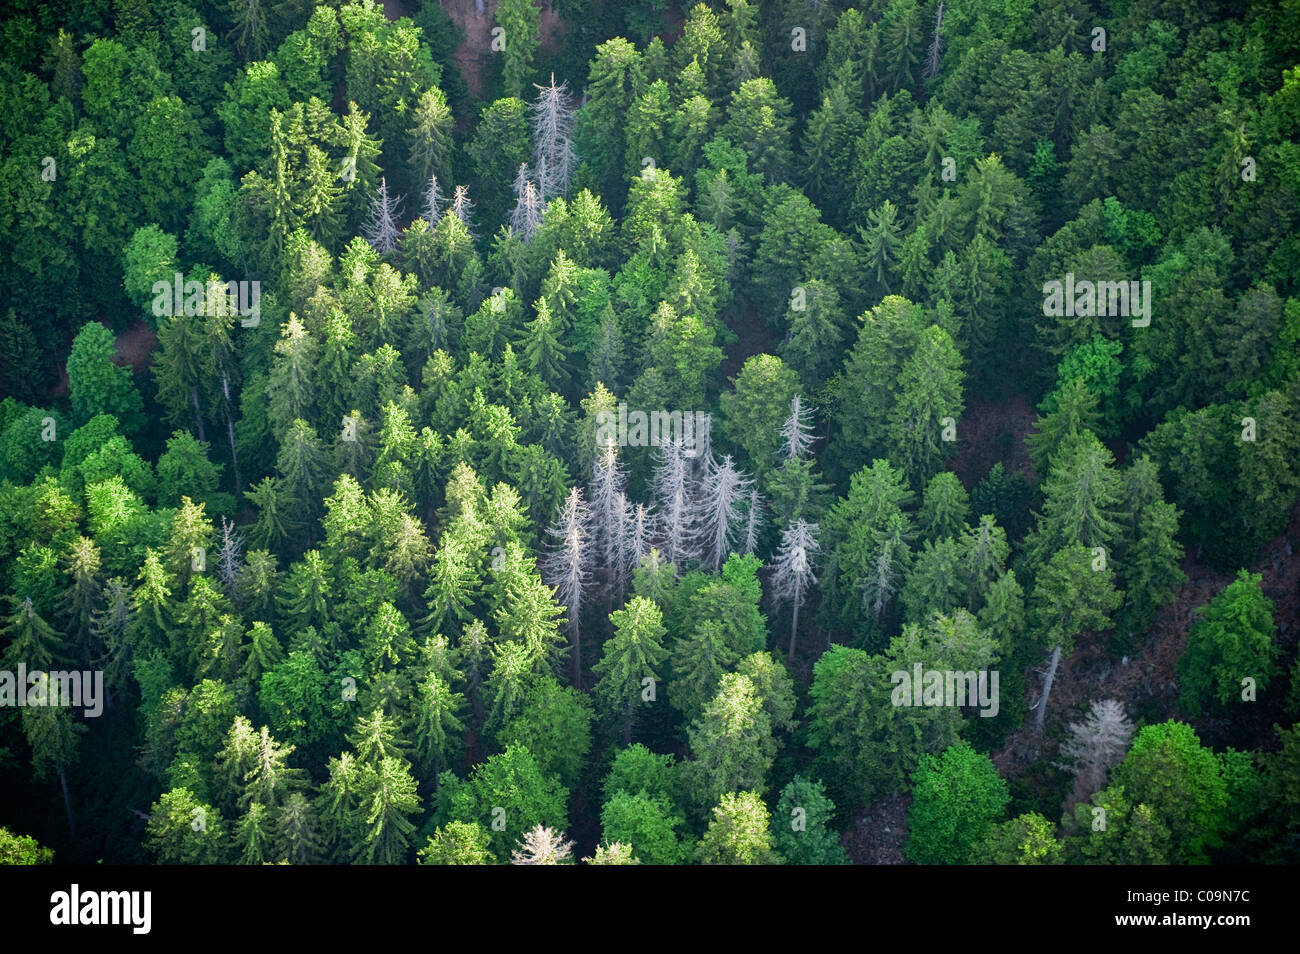 Aerial view of a conifer forest, forest decline, southern Black Forest, Baden-Wuerttemberg, Germany, Europe - Stock Image